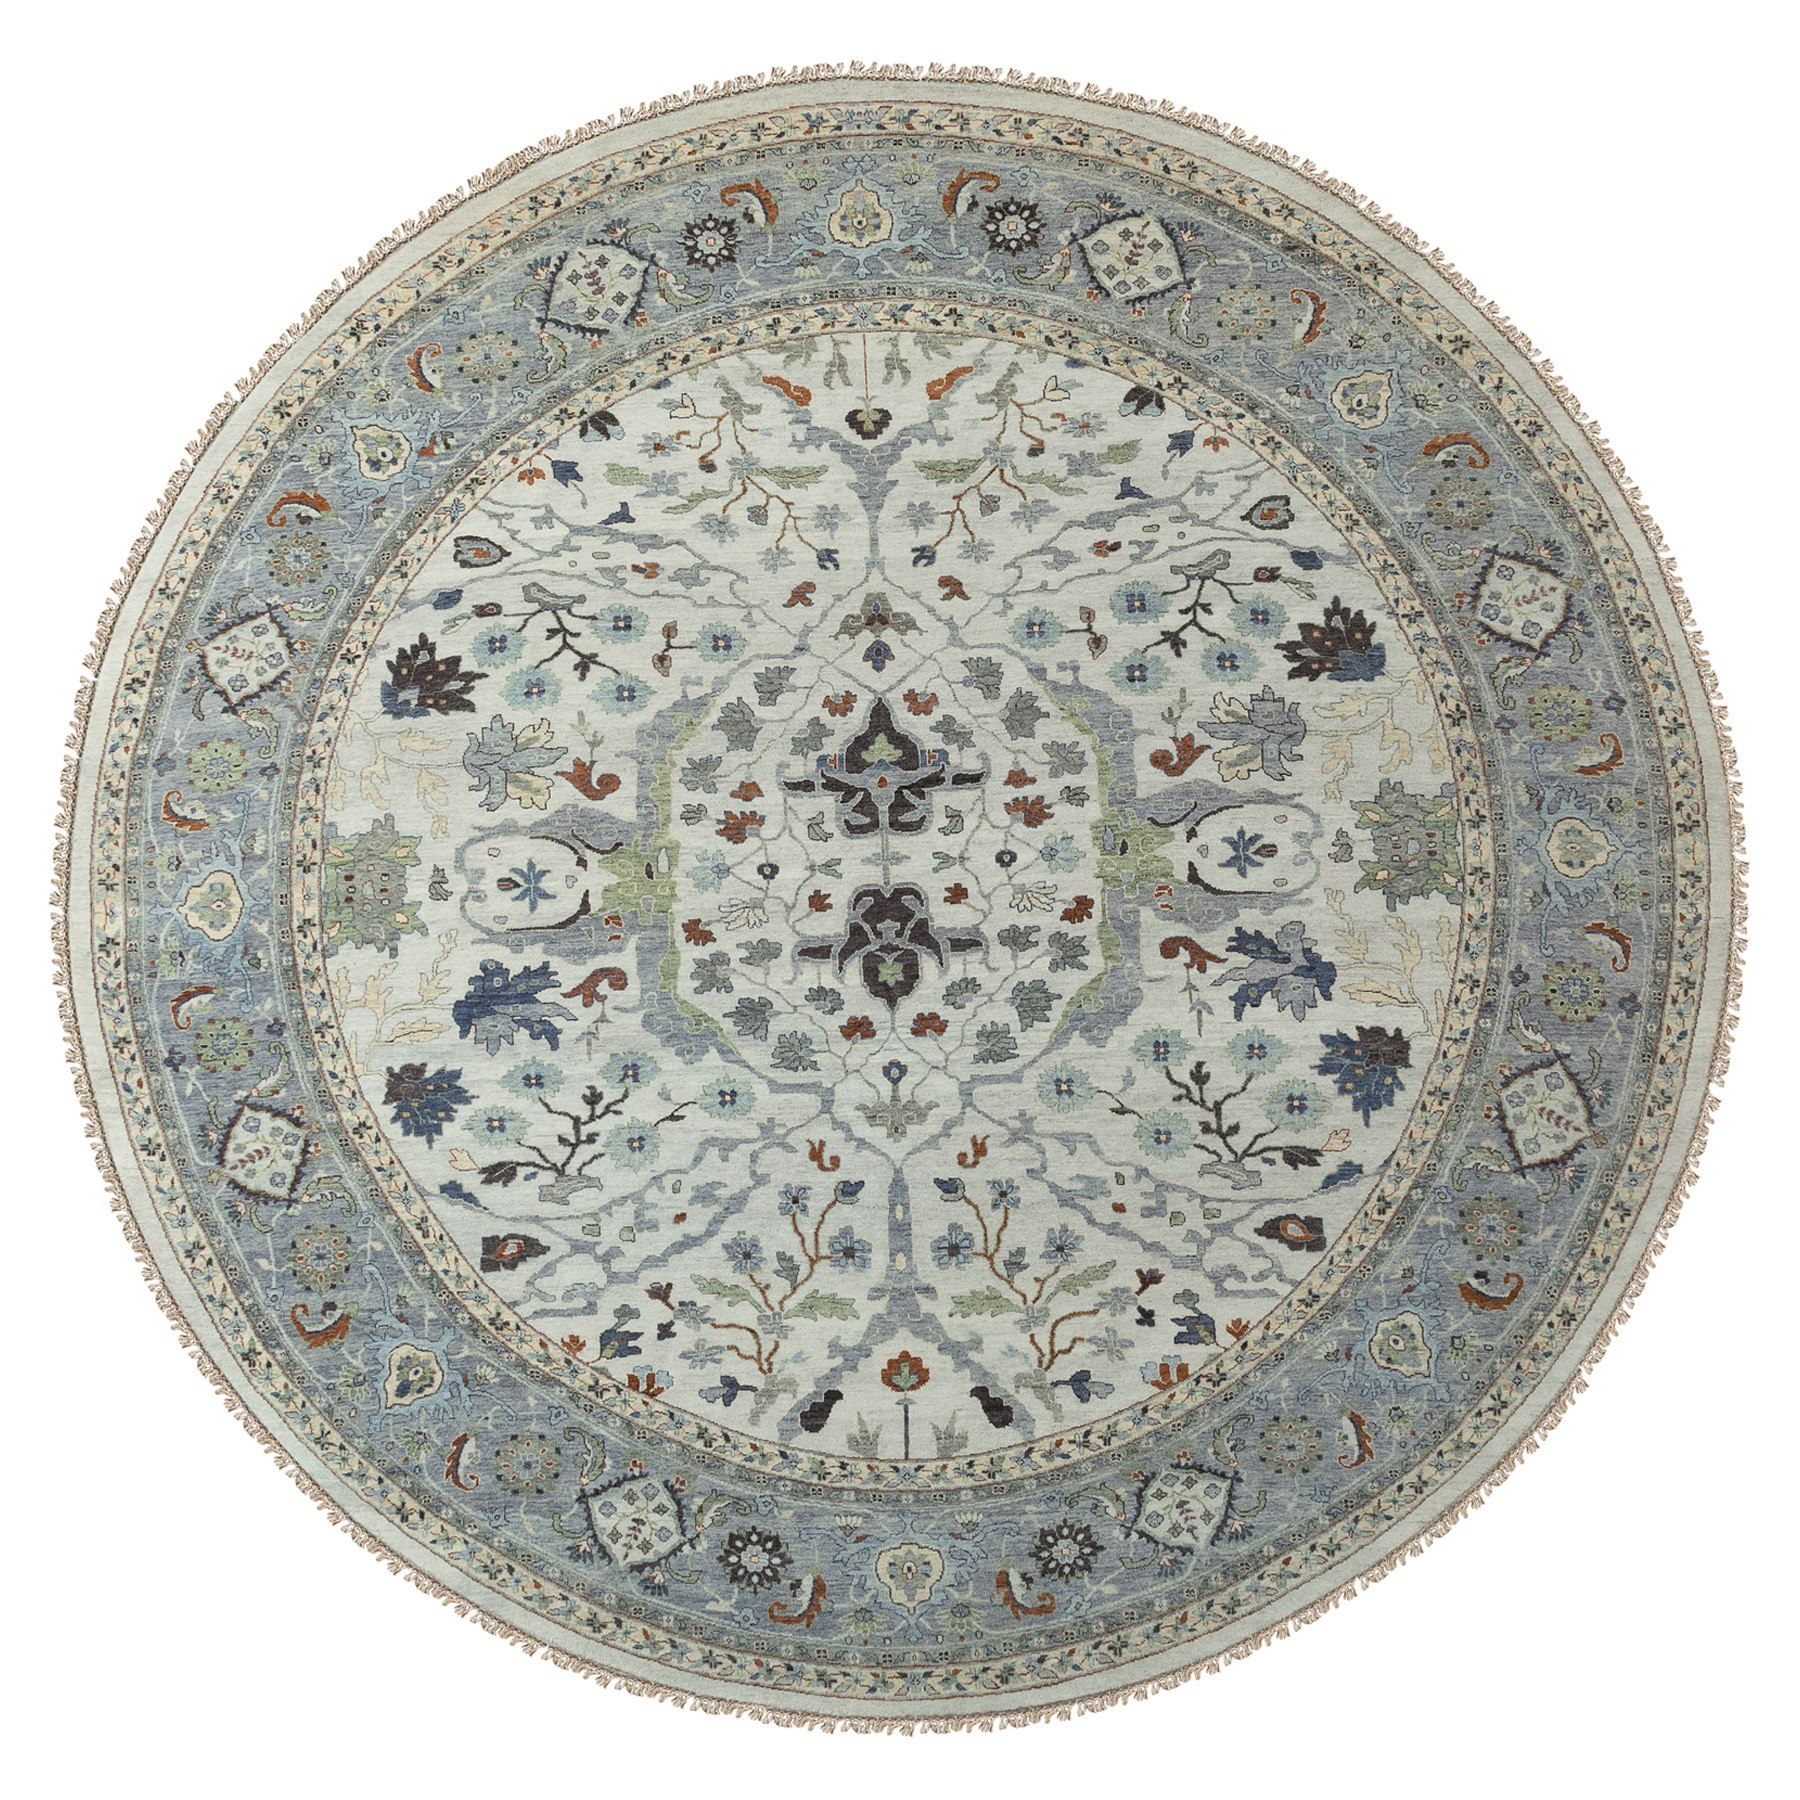 12'x12' Oversize Gray Denser Weave Oushak Large Motifs Hand Knotted Pure Wool Oriental Round Rug